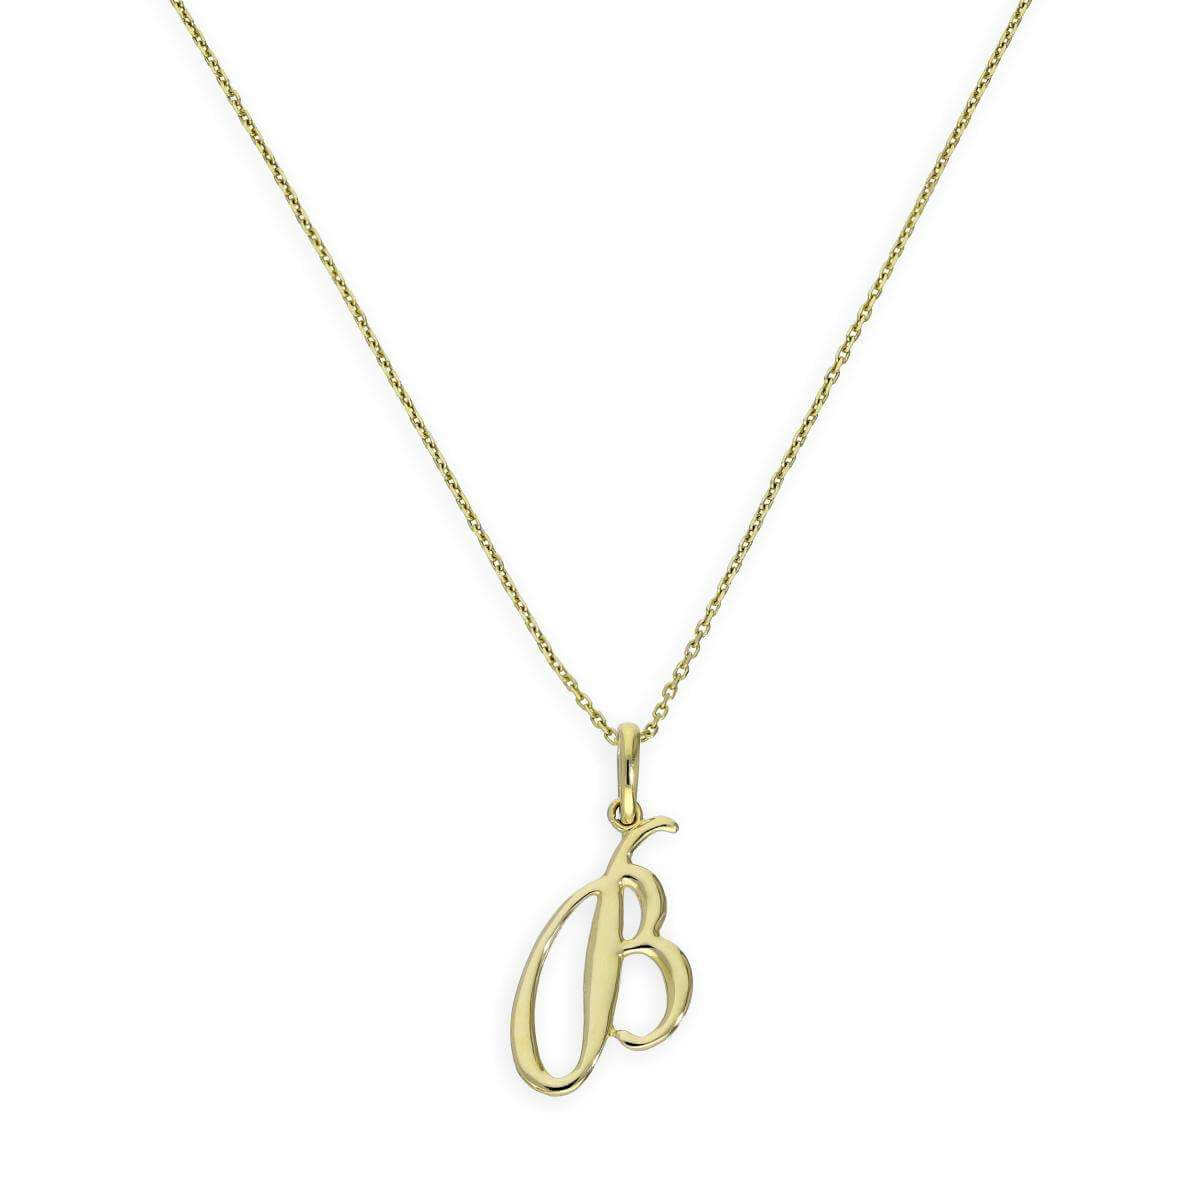 9ct Gold Fancy Calligraphy Script Letter B Pendant Necklace 16 - 20 Inches